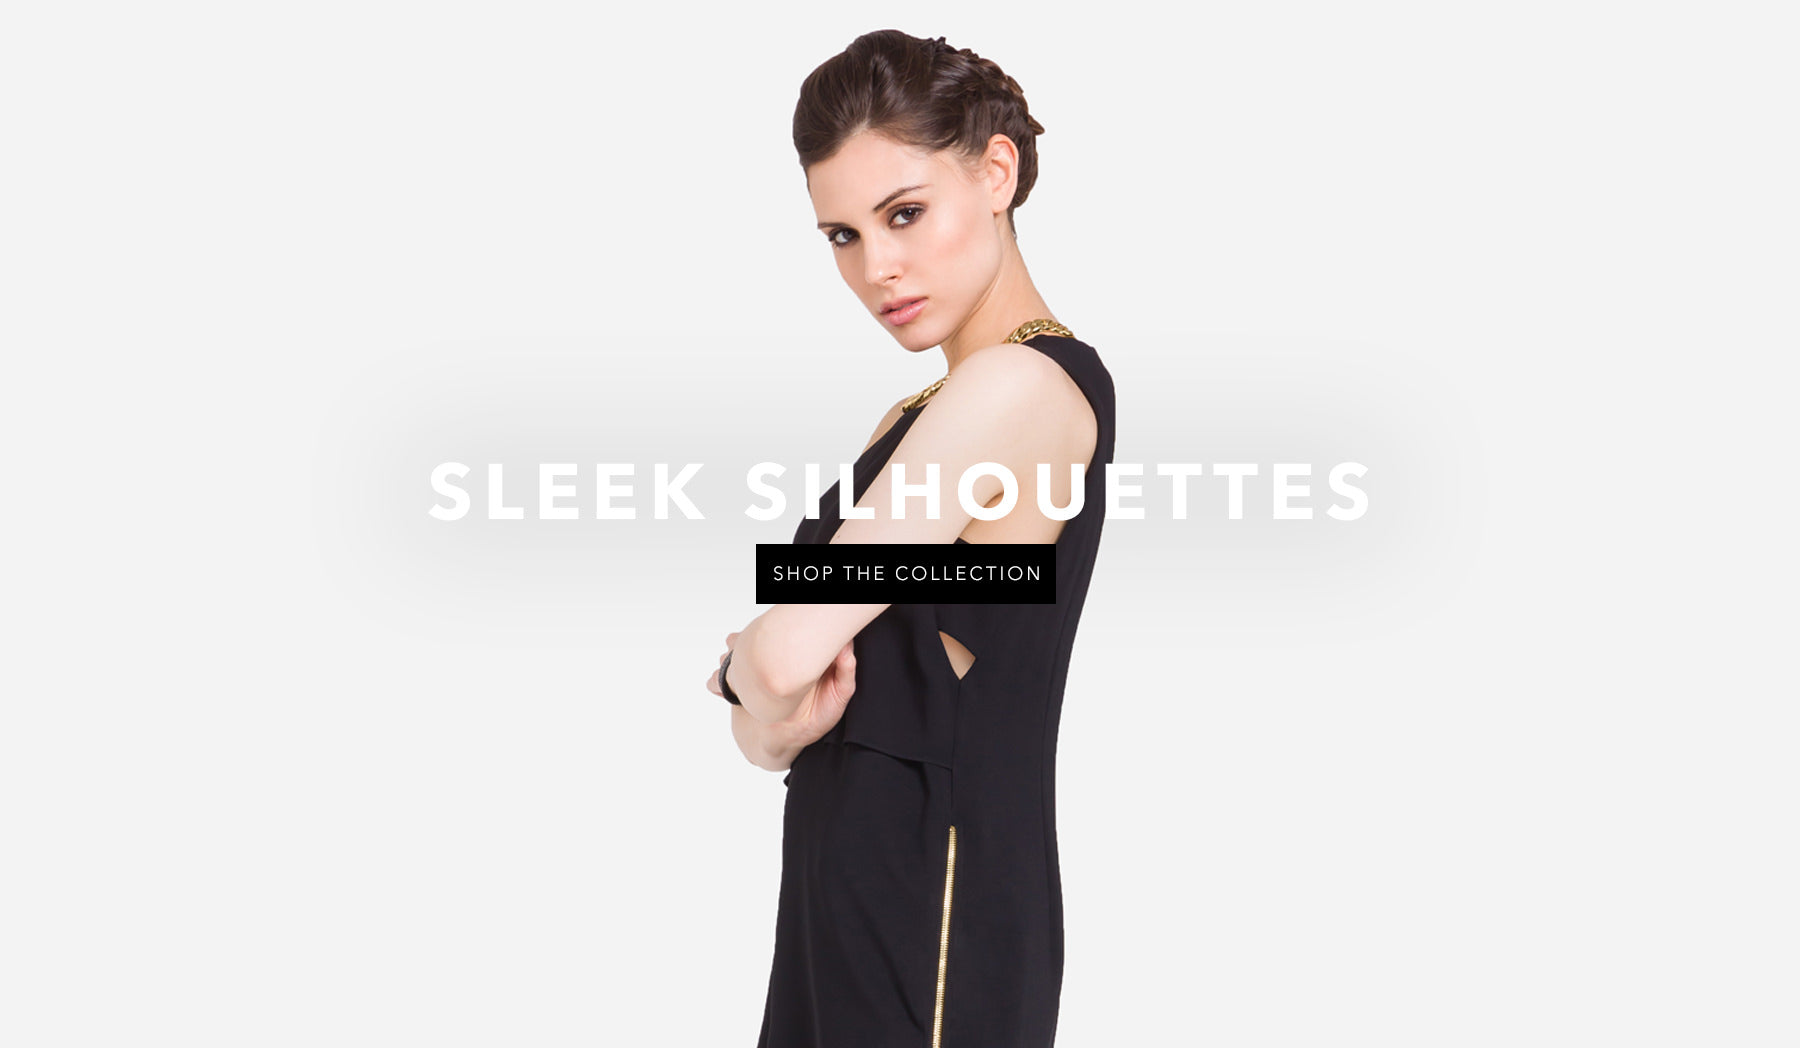 sleek silhouettes - shop the collection